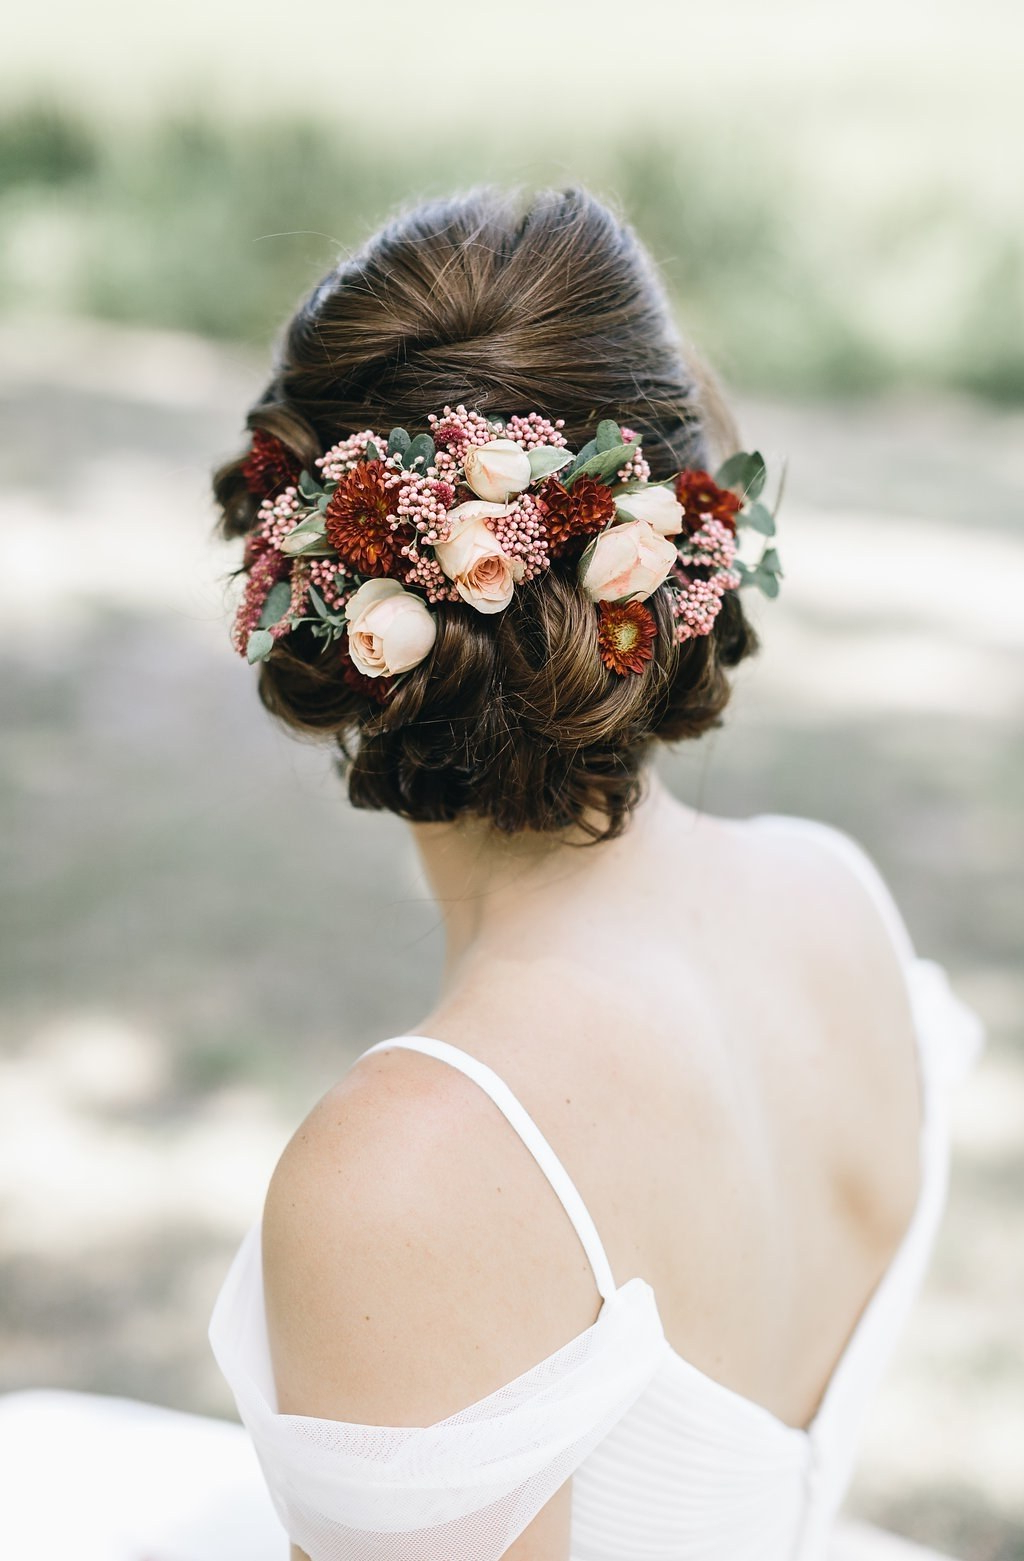 Brides Throughout Fashionable Undone Low Bun Bridal Hairstyles With Floral Headband (View 18 of 20)